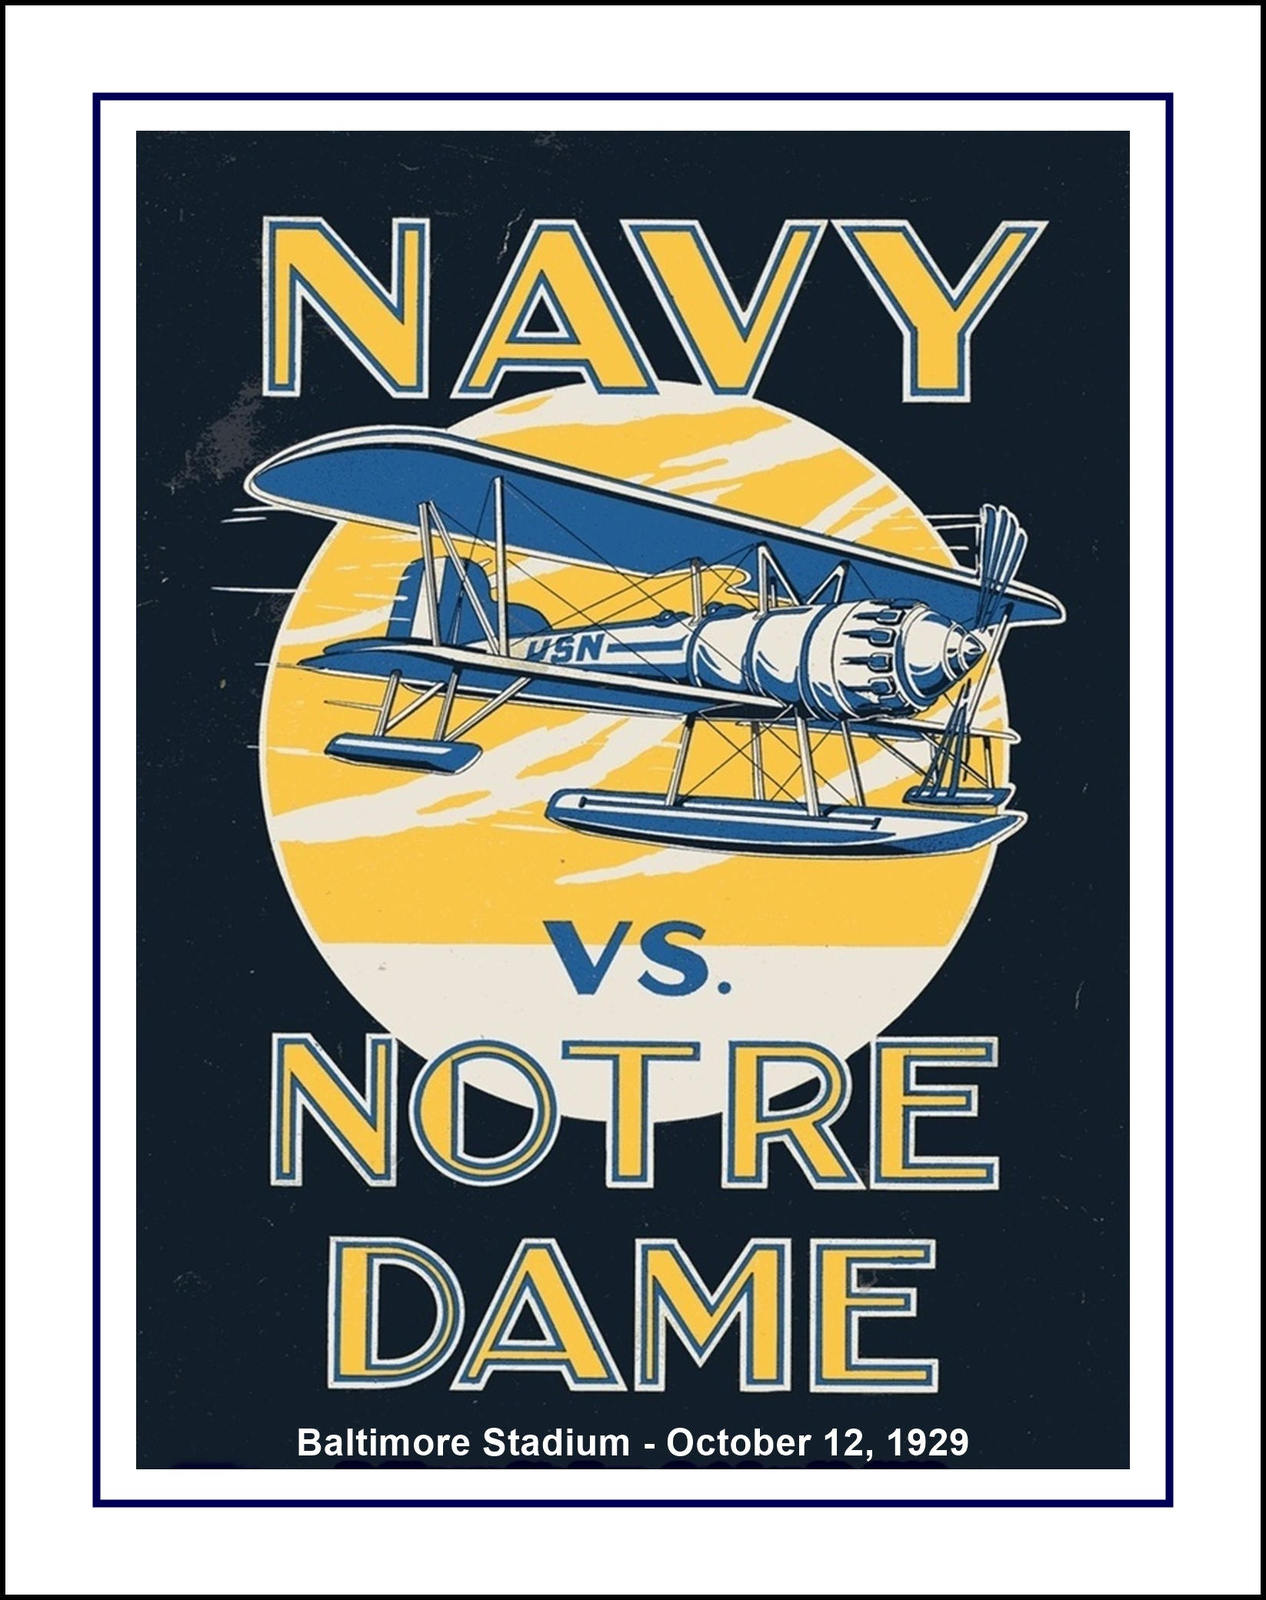 Vintage Notre Dame, Navy, Football Poster, and 50 similar items